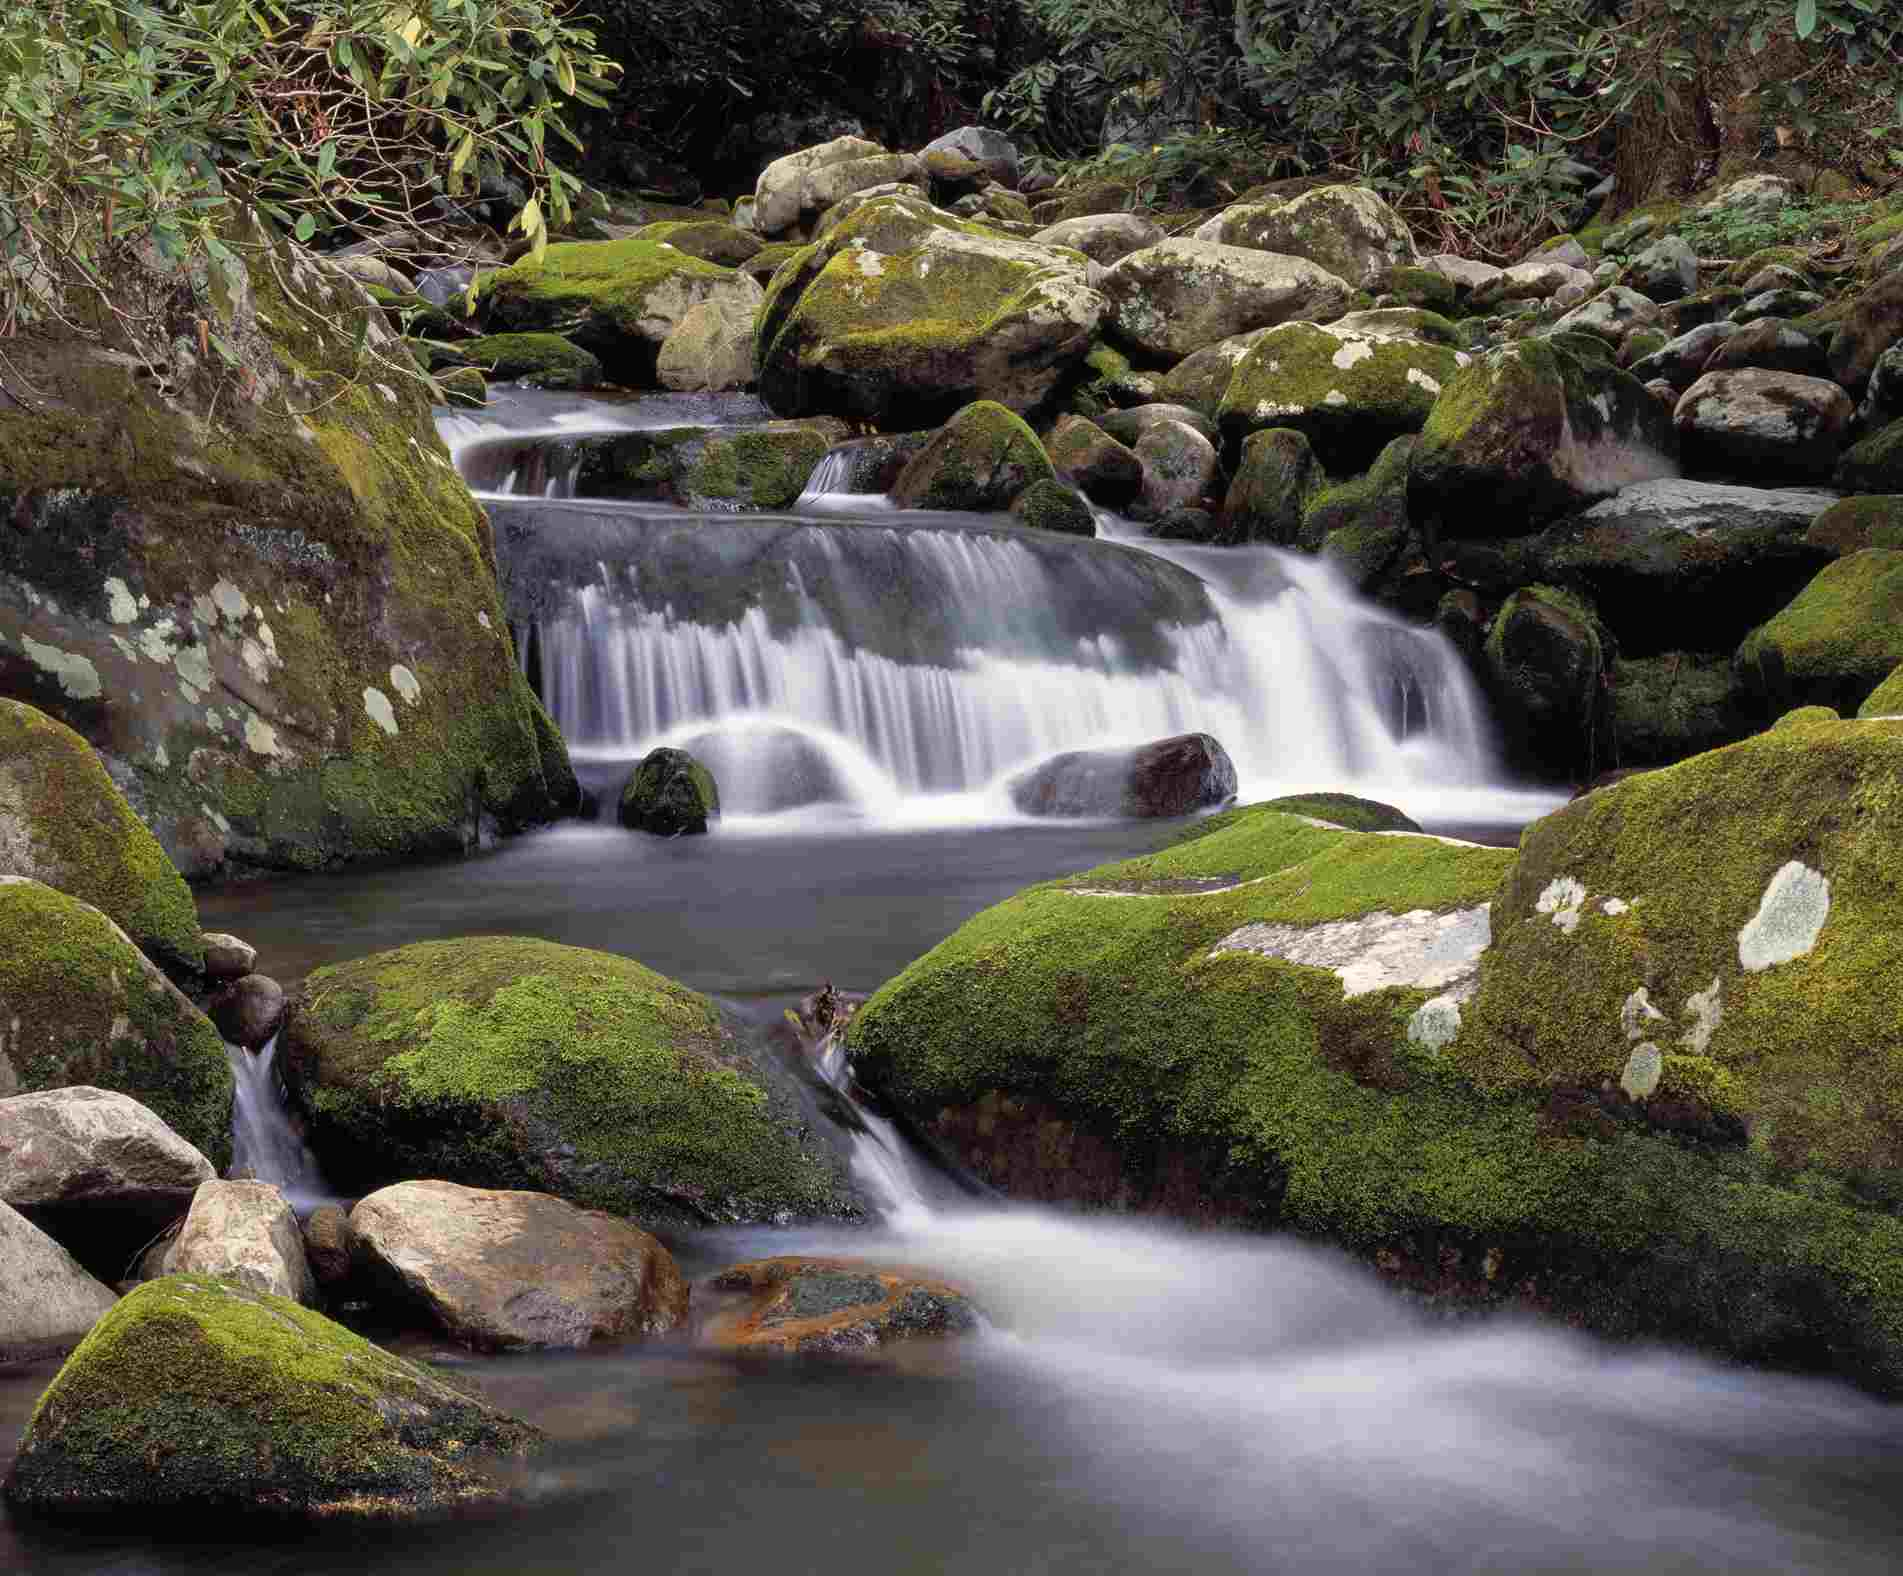 The Roaring Fork River rushes through forest over moss covered rocks